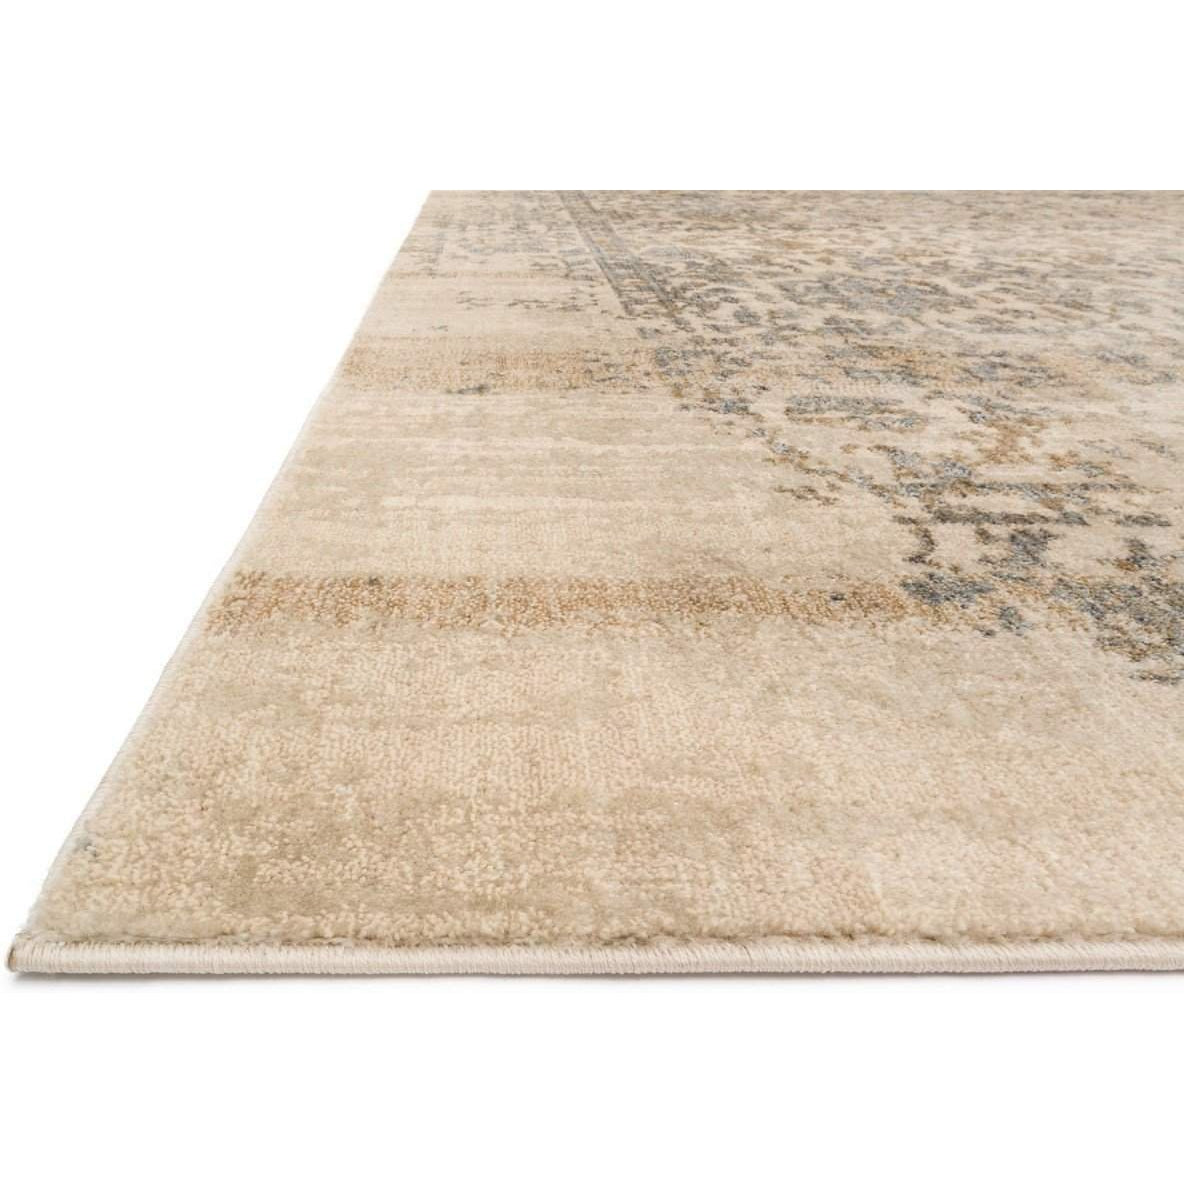 Joanna Gaines Rug Of Magnolia Home Rug Collection Kivi